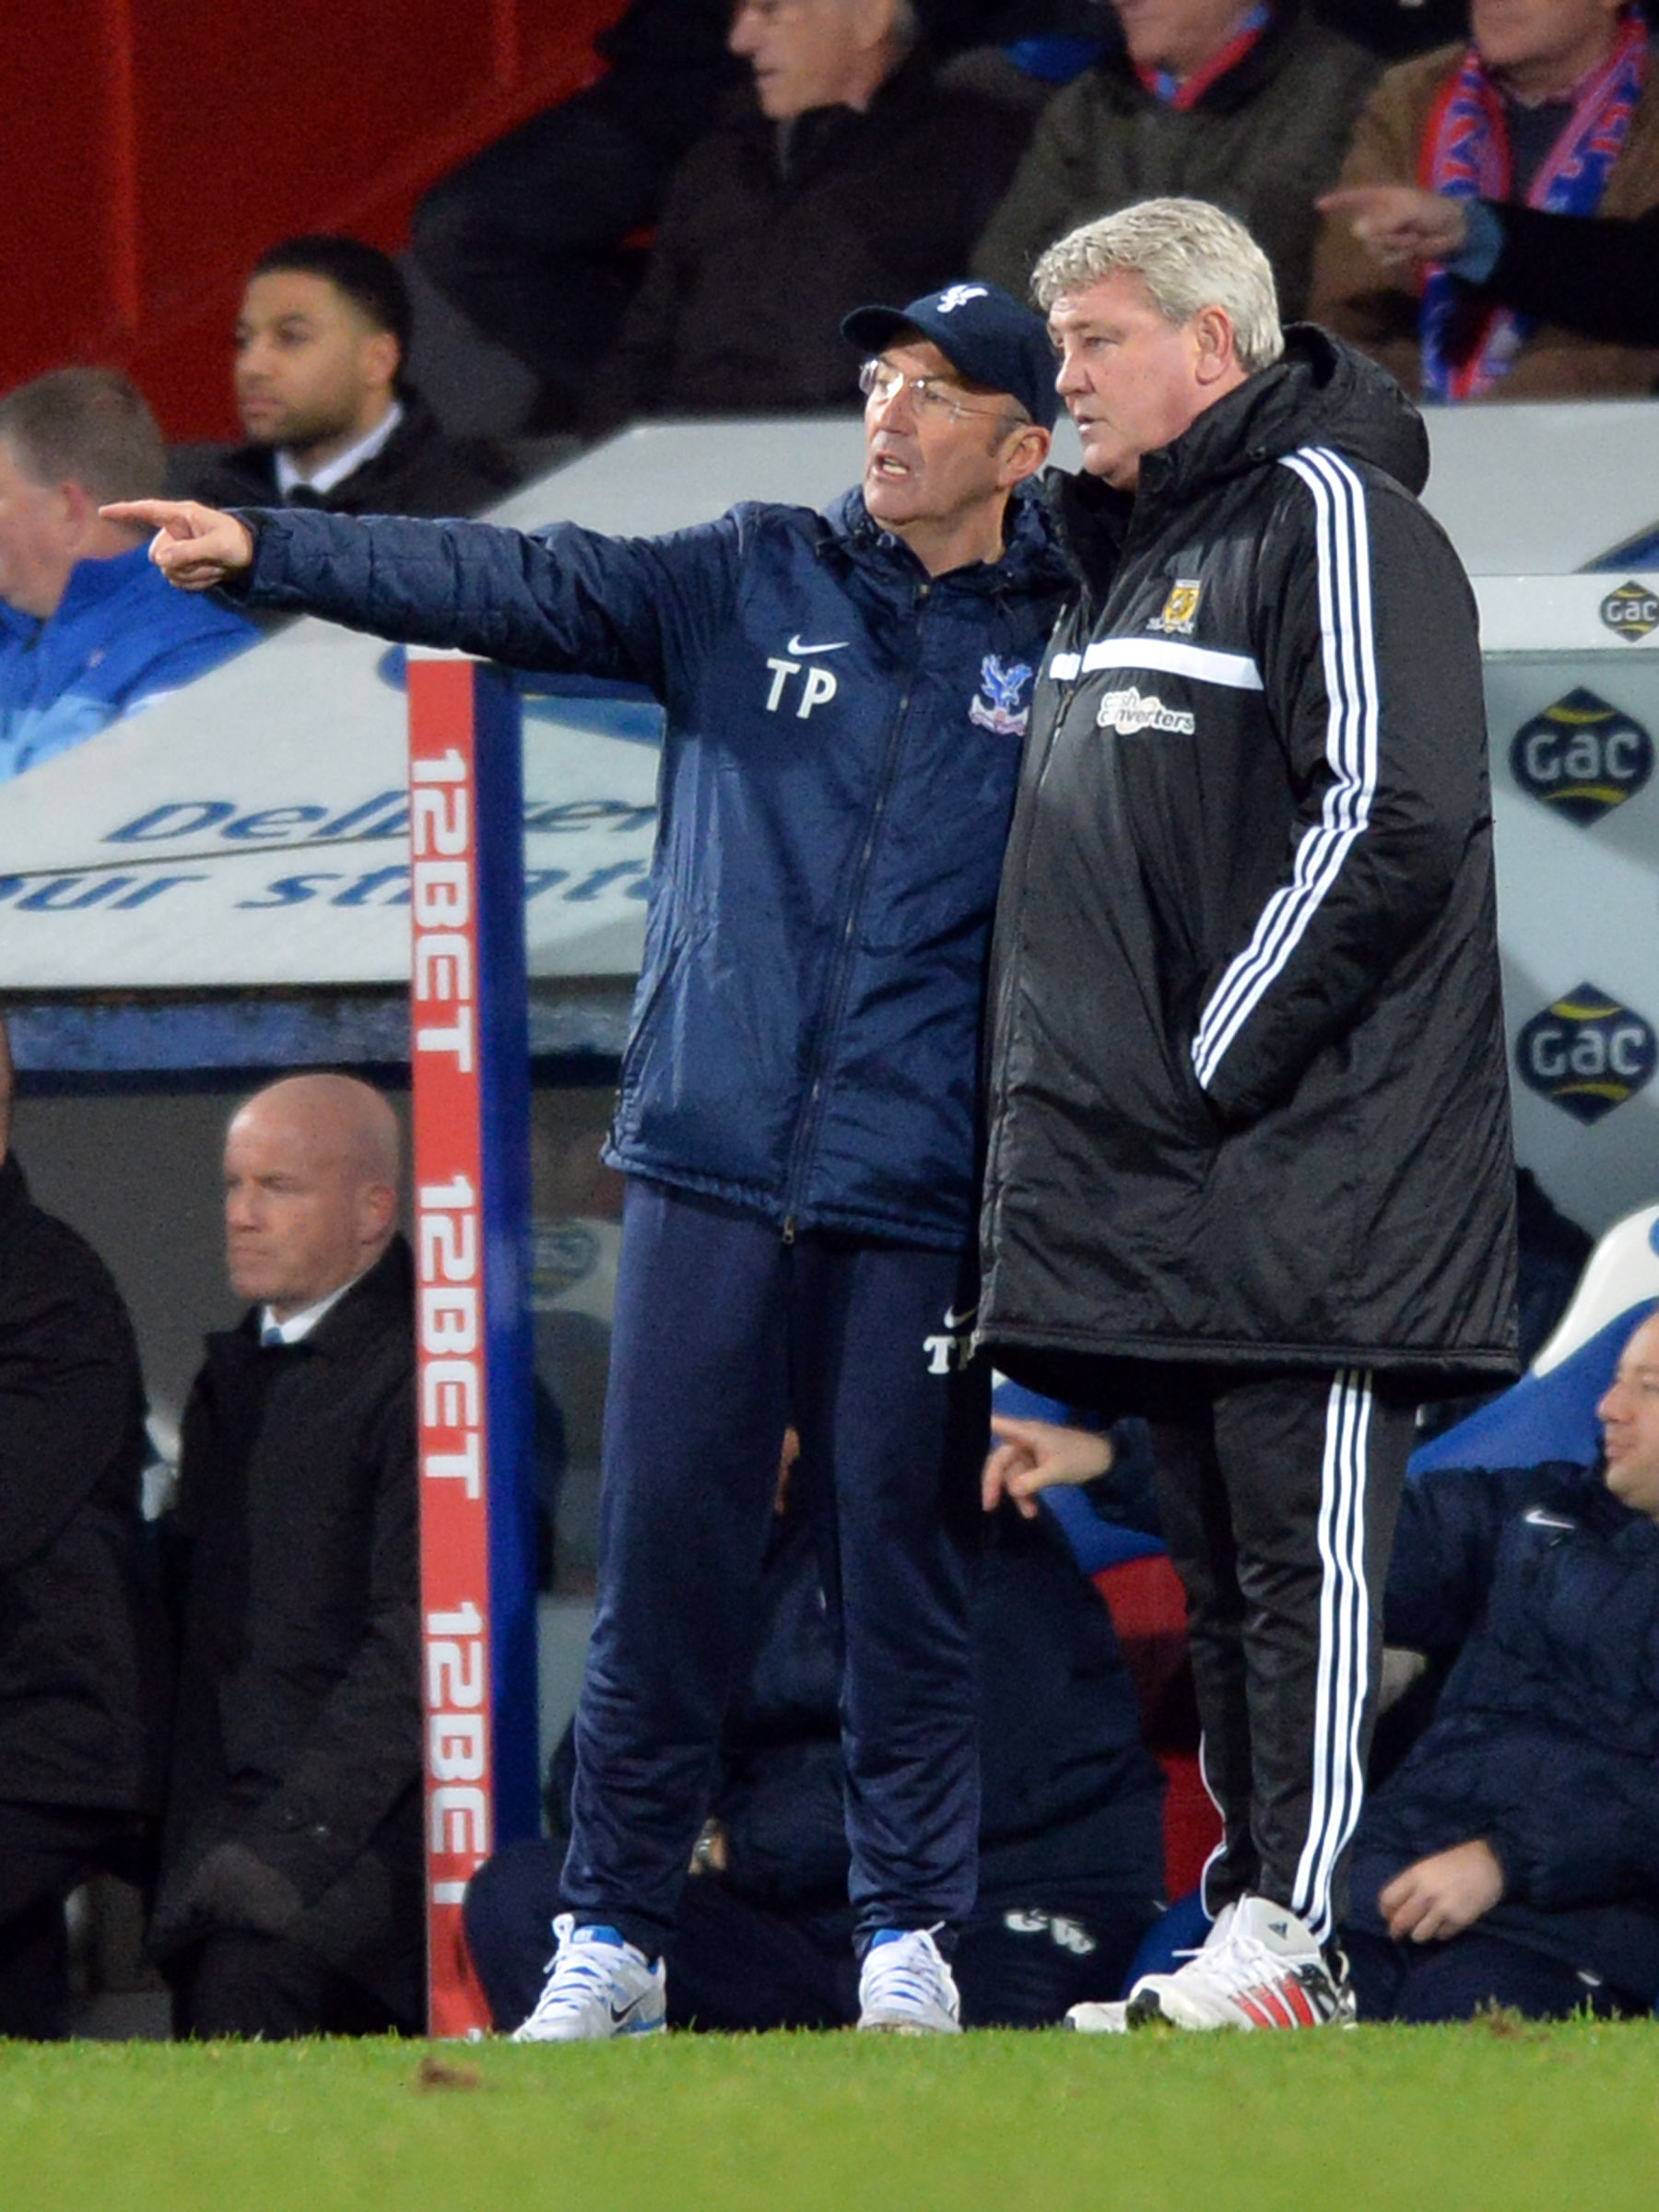 News Shopper: Steve Bruce and Tony Pulis share their views